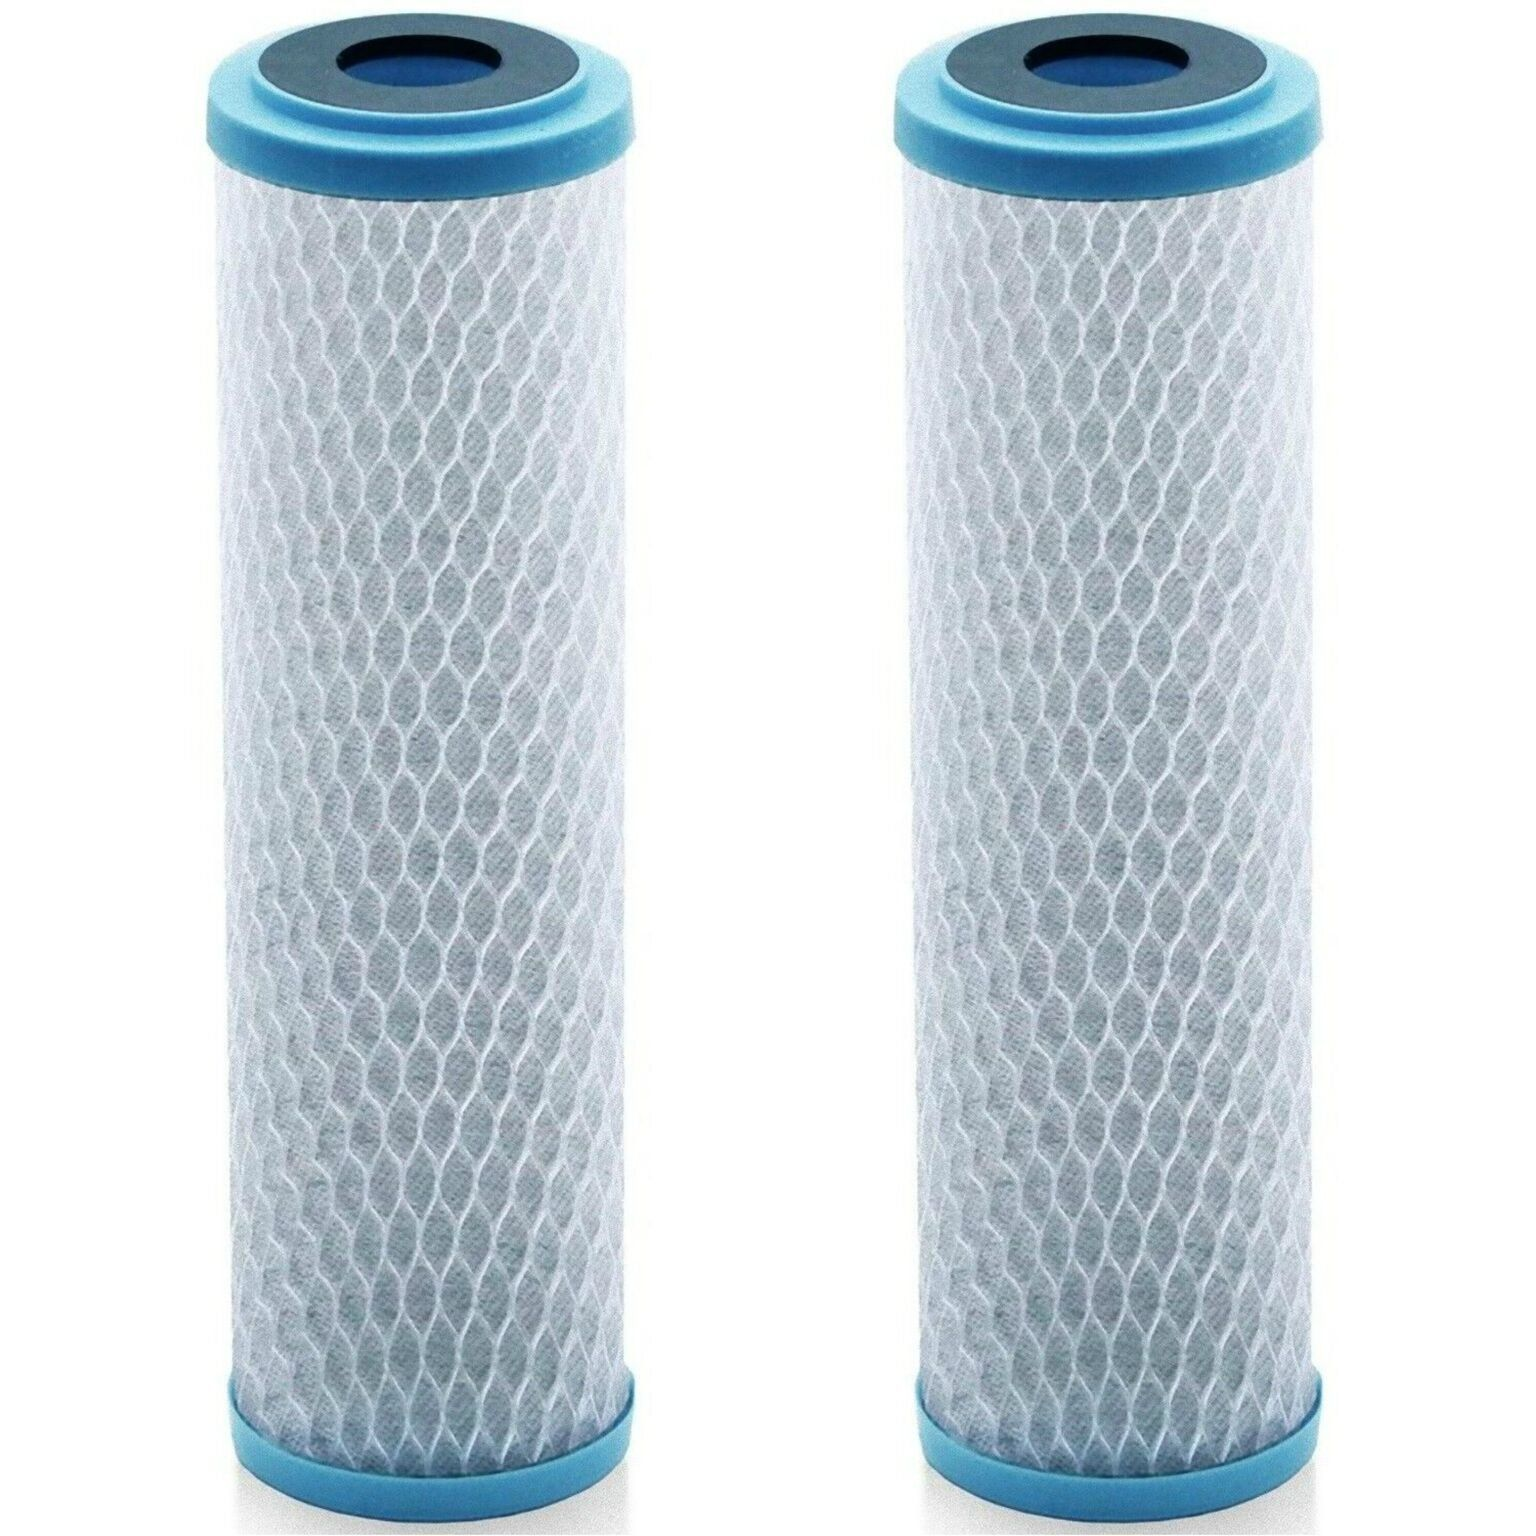 Lake Industries Universal Kdf 55 Activated Carbon Water Filter Cartridge 1 Micron Replacement 10 In 2020 Carbon Water Filter Water Purifier Countertop Water Filter